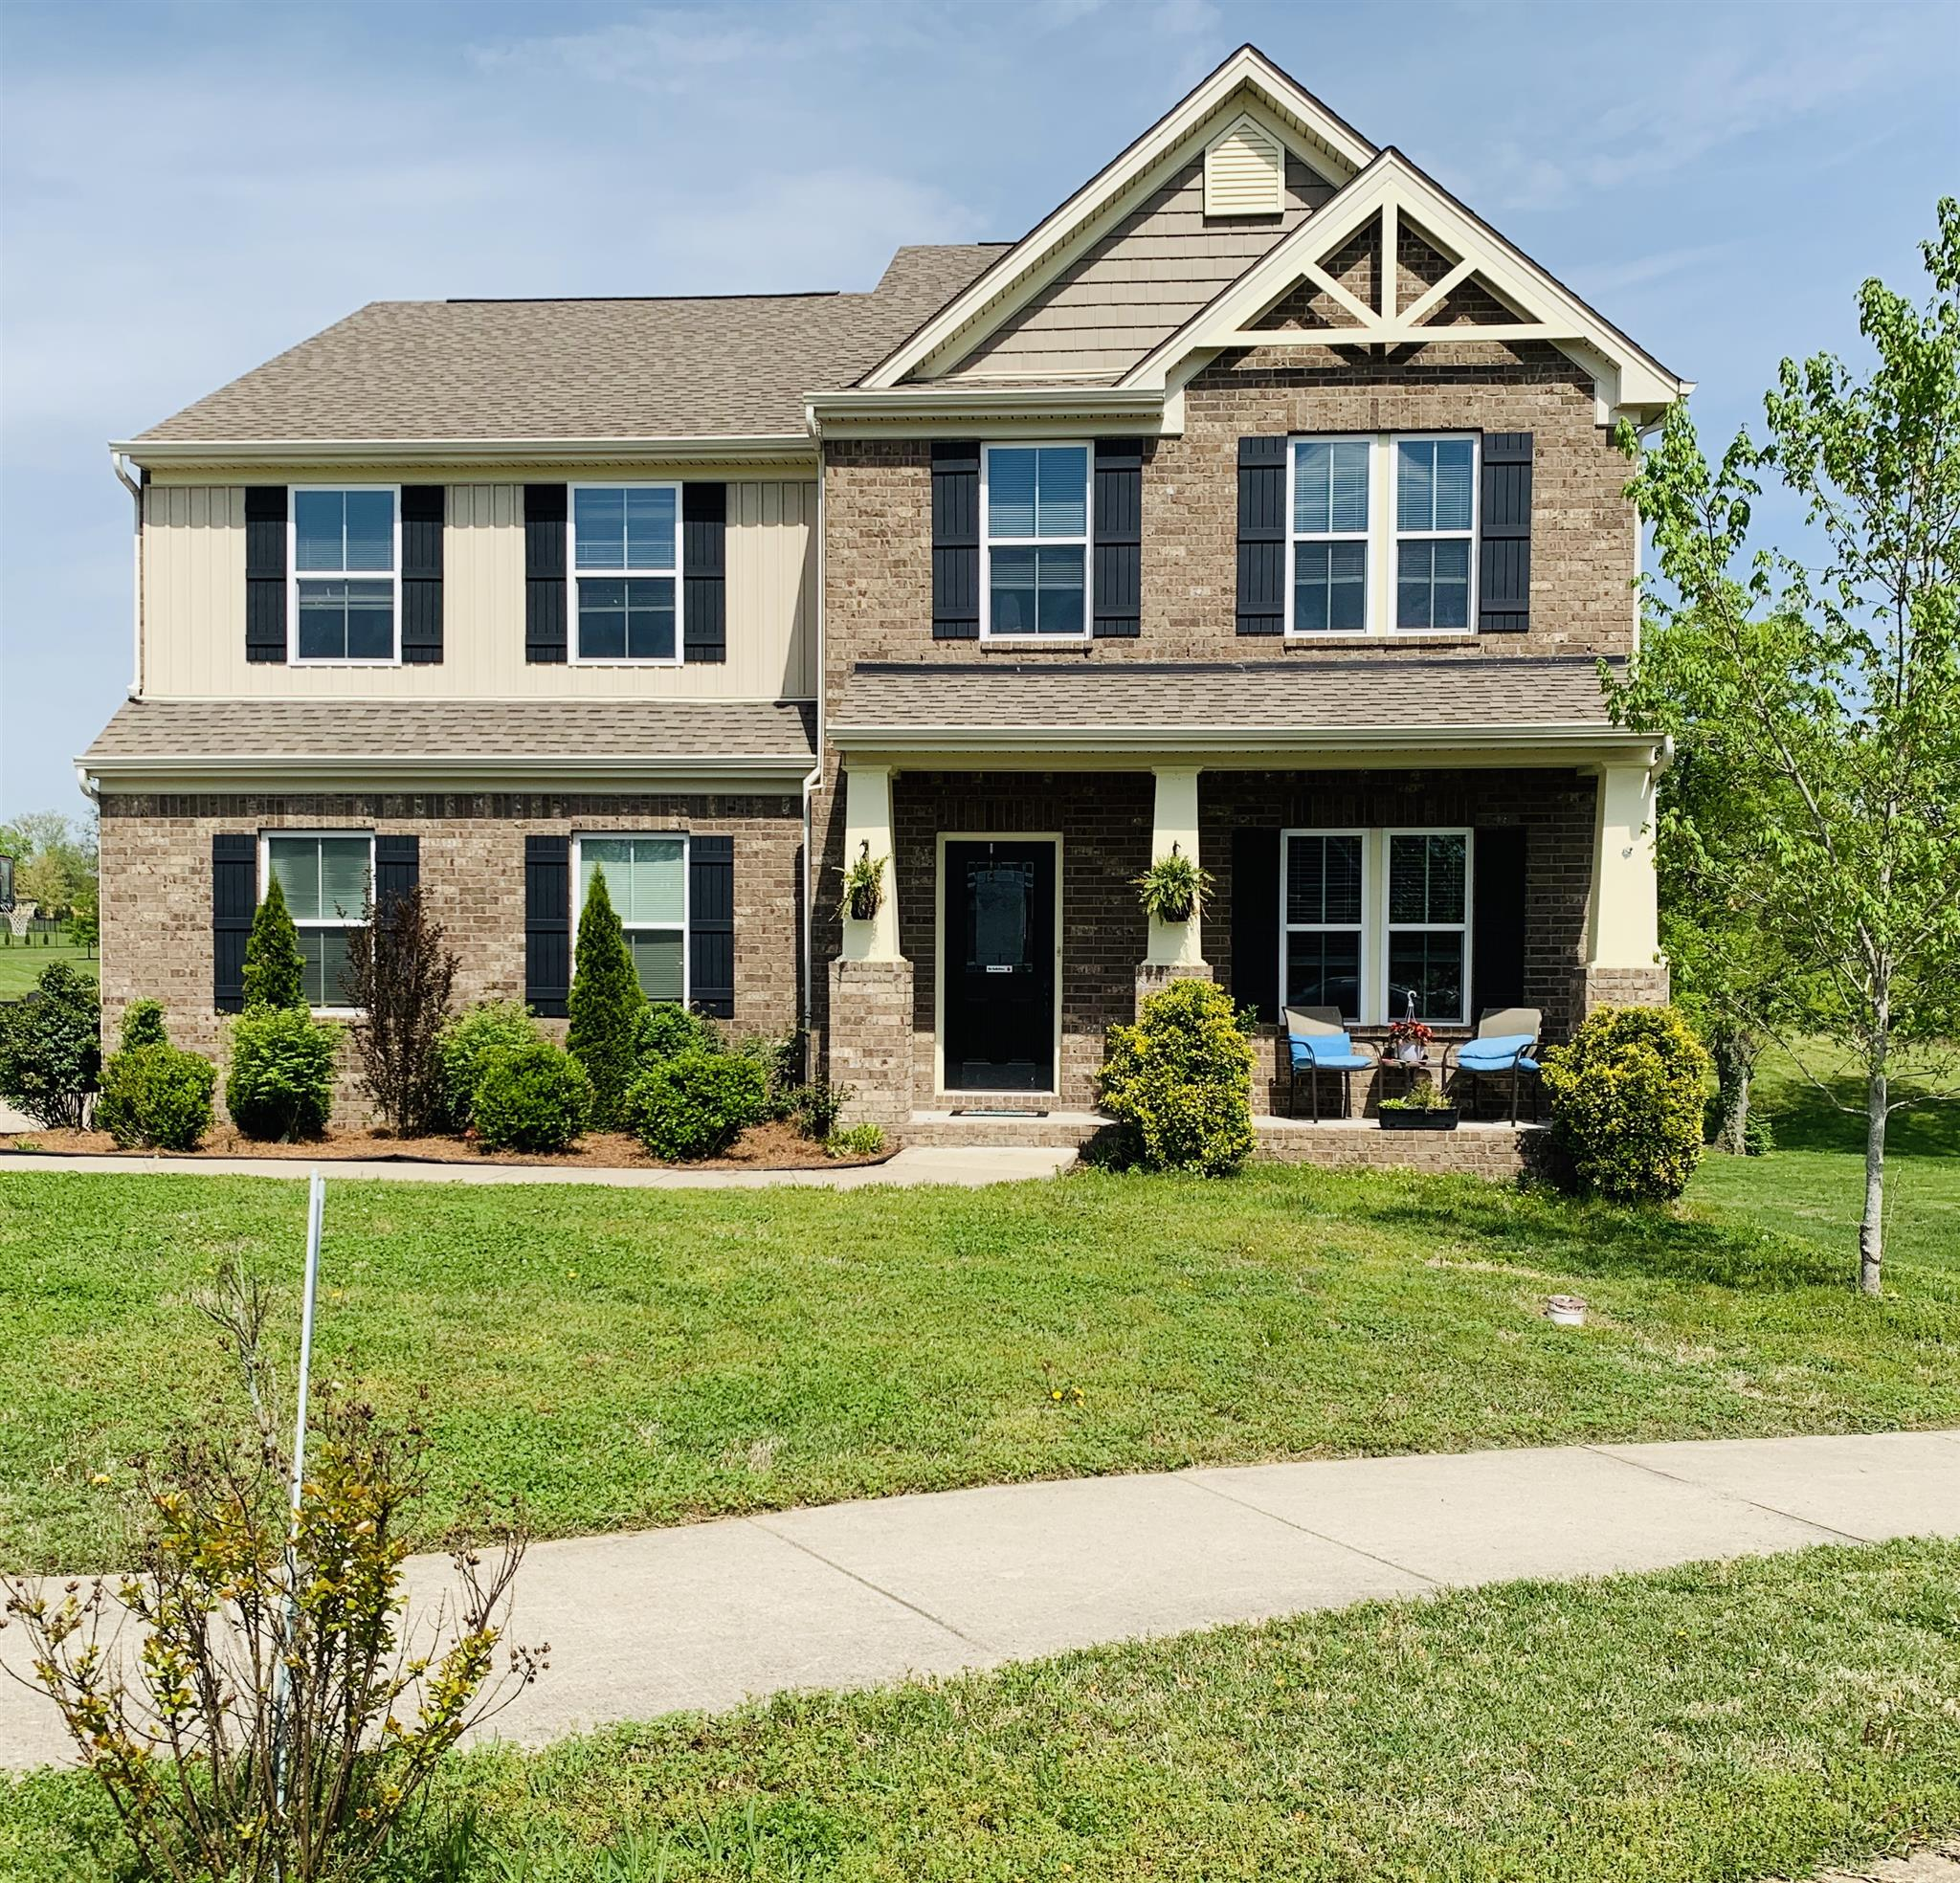 314 Birkshire Pl, Gallatin, Tennessee